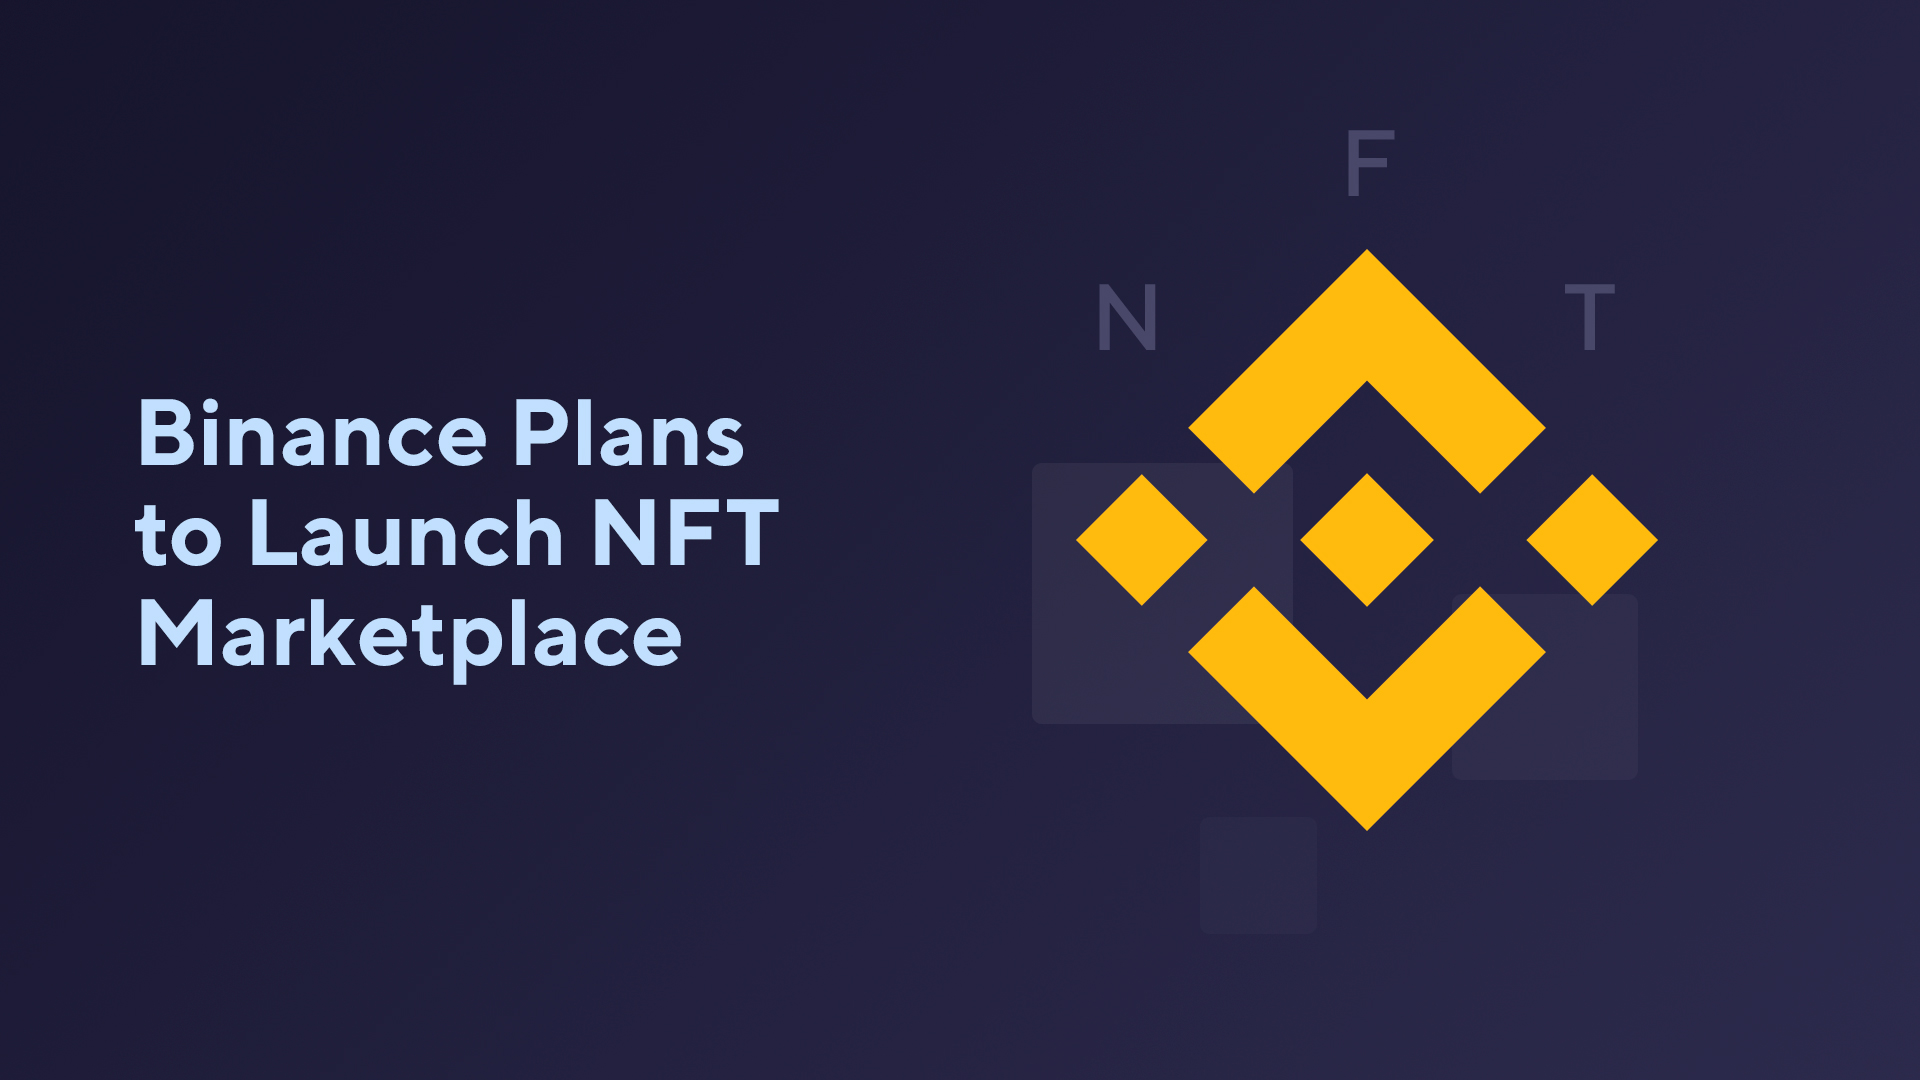 Binance Plans to Launch NFT Marketplace